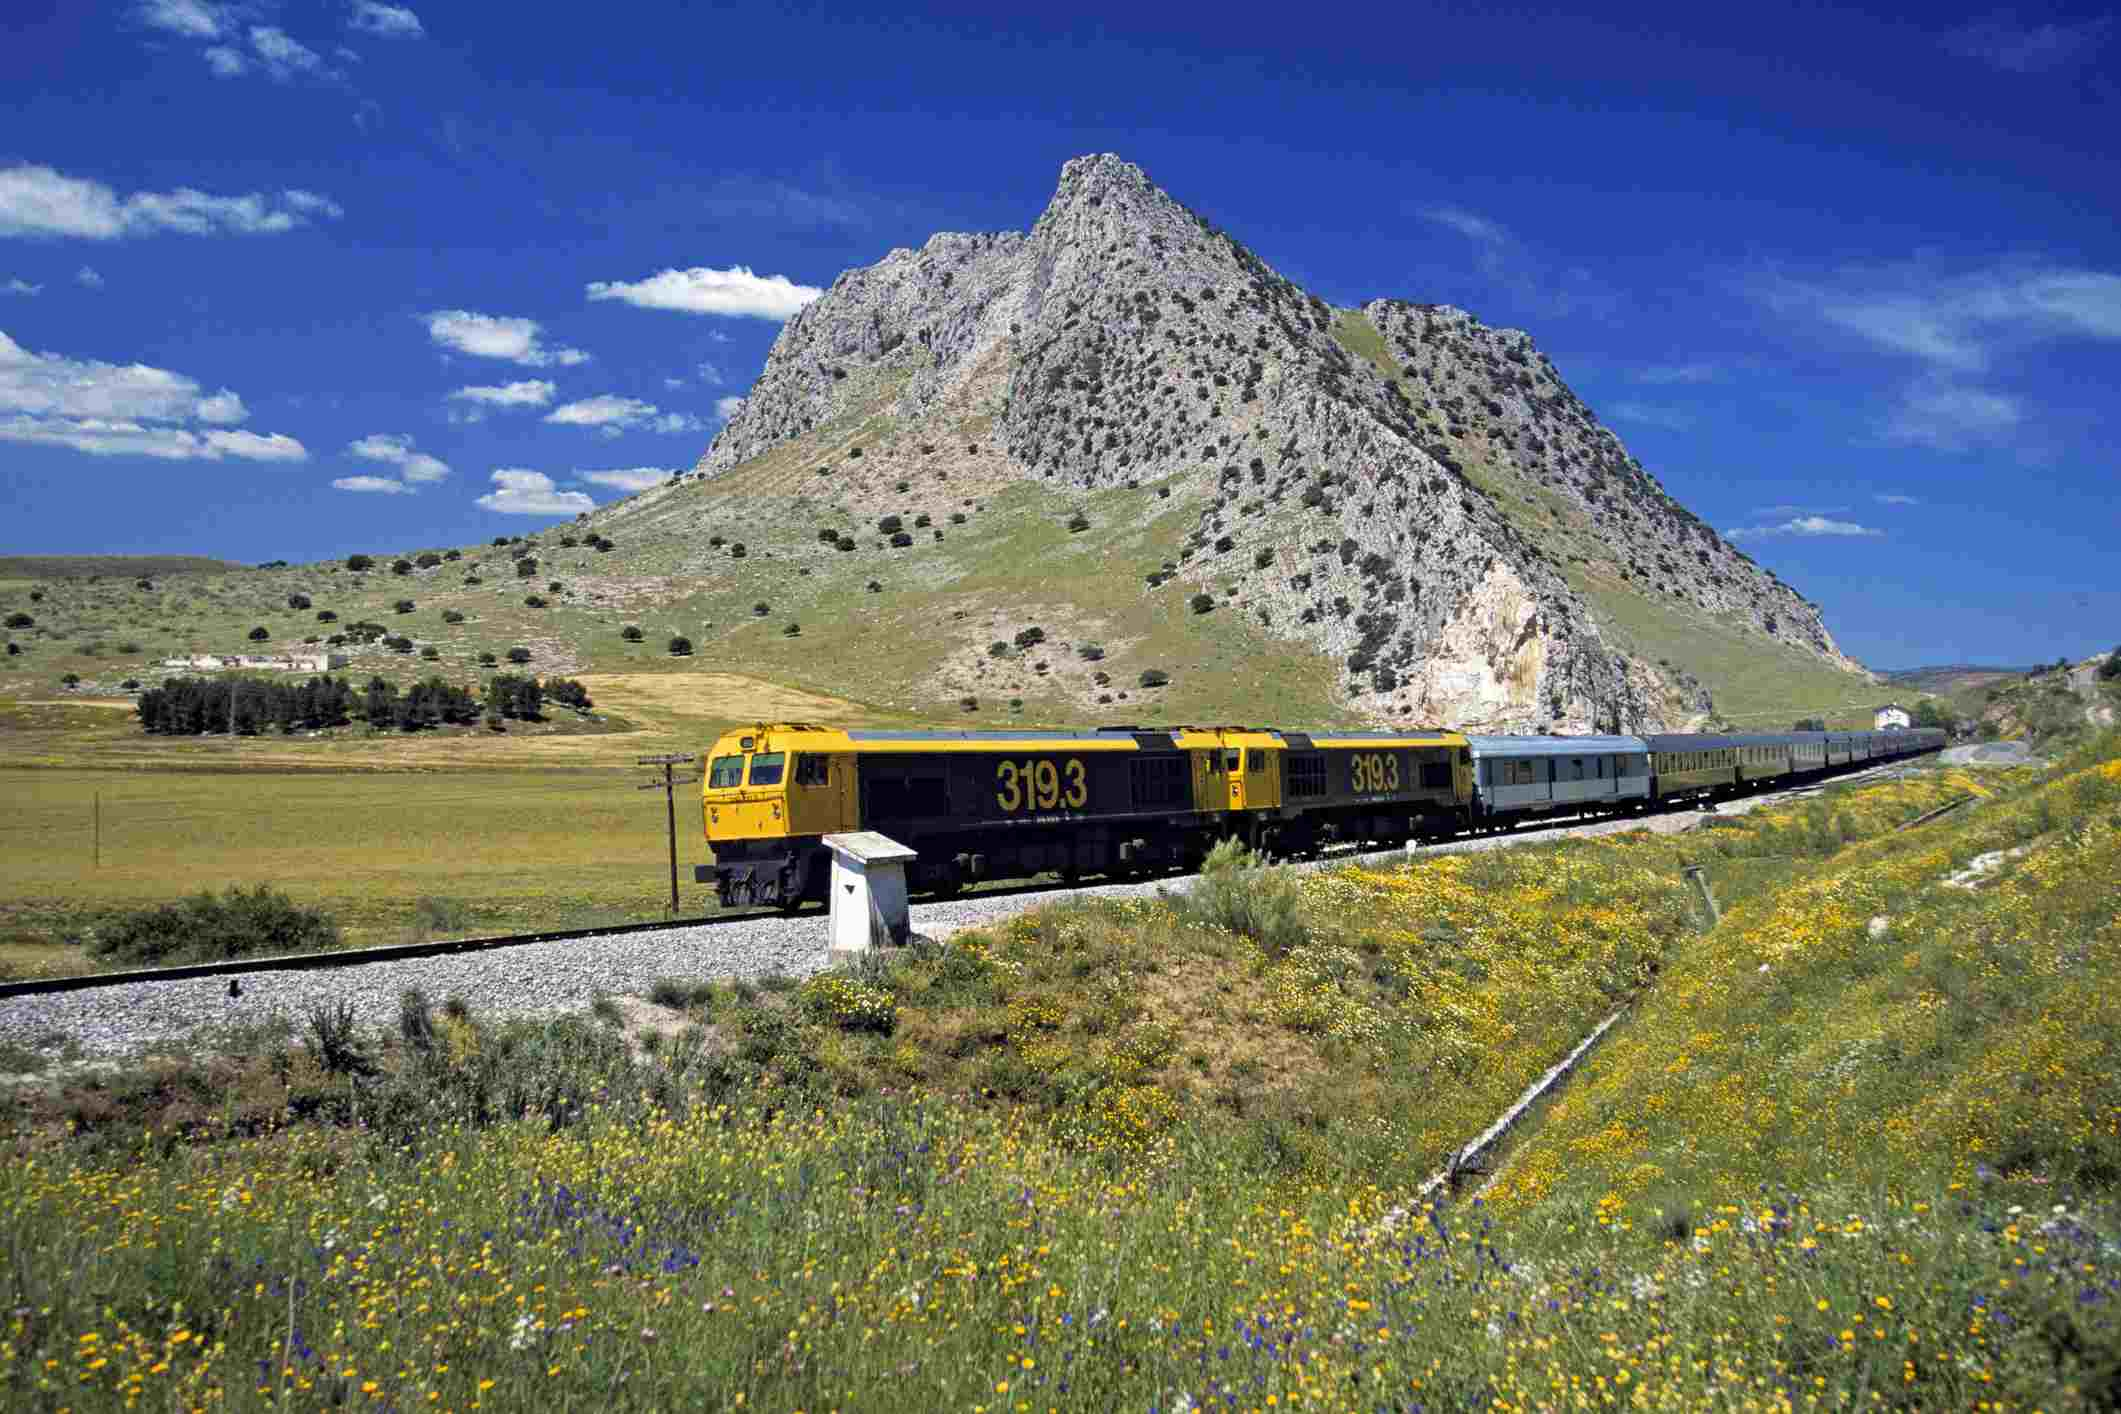 Spain, Andalusia, Granada Province, El Andalus Expreso, luxurous train, journey during 6 days through Andalusian landscape